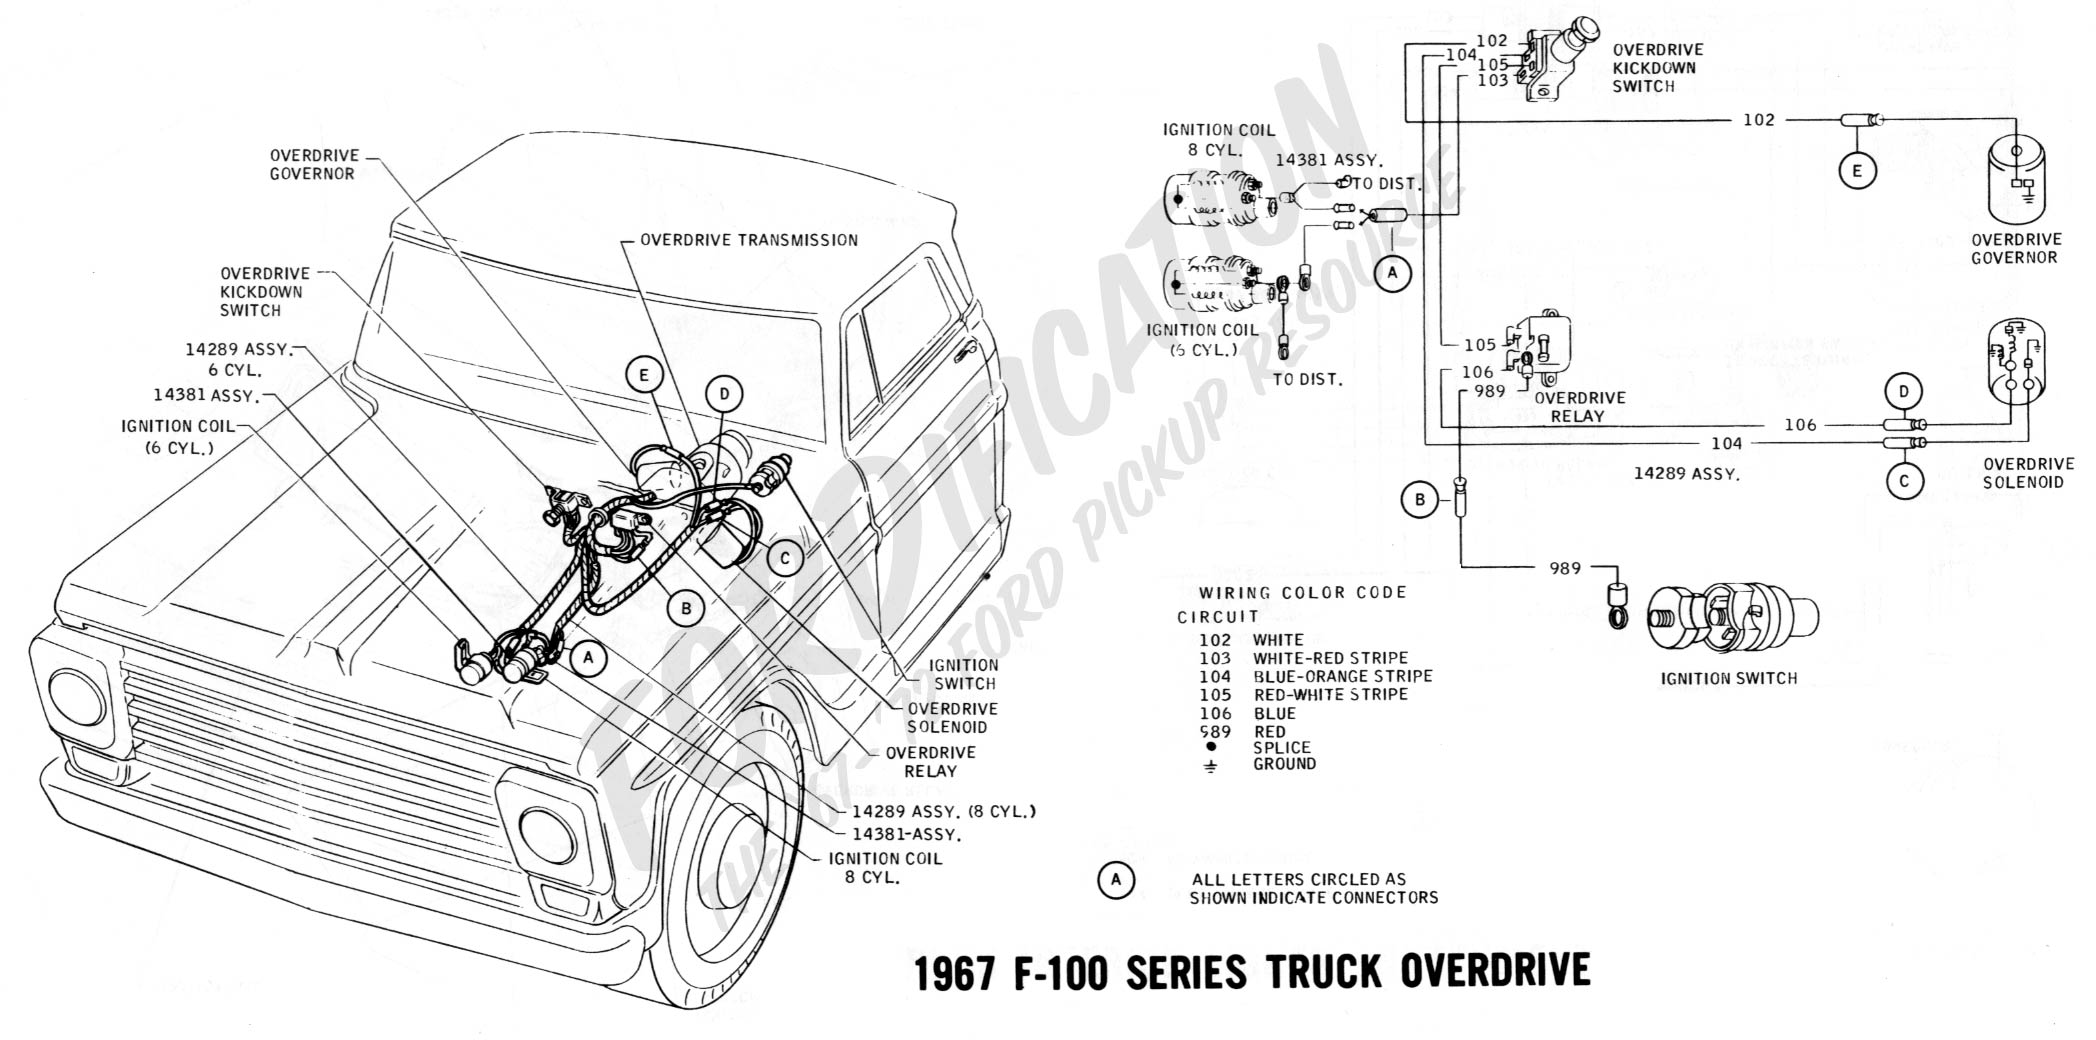 wiring 1967overdrive2 ford truck technical drawings and schematics section h wiring 1985 ford truck wiring diagram at eliteediting.co